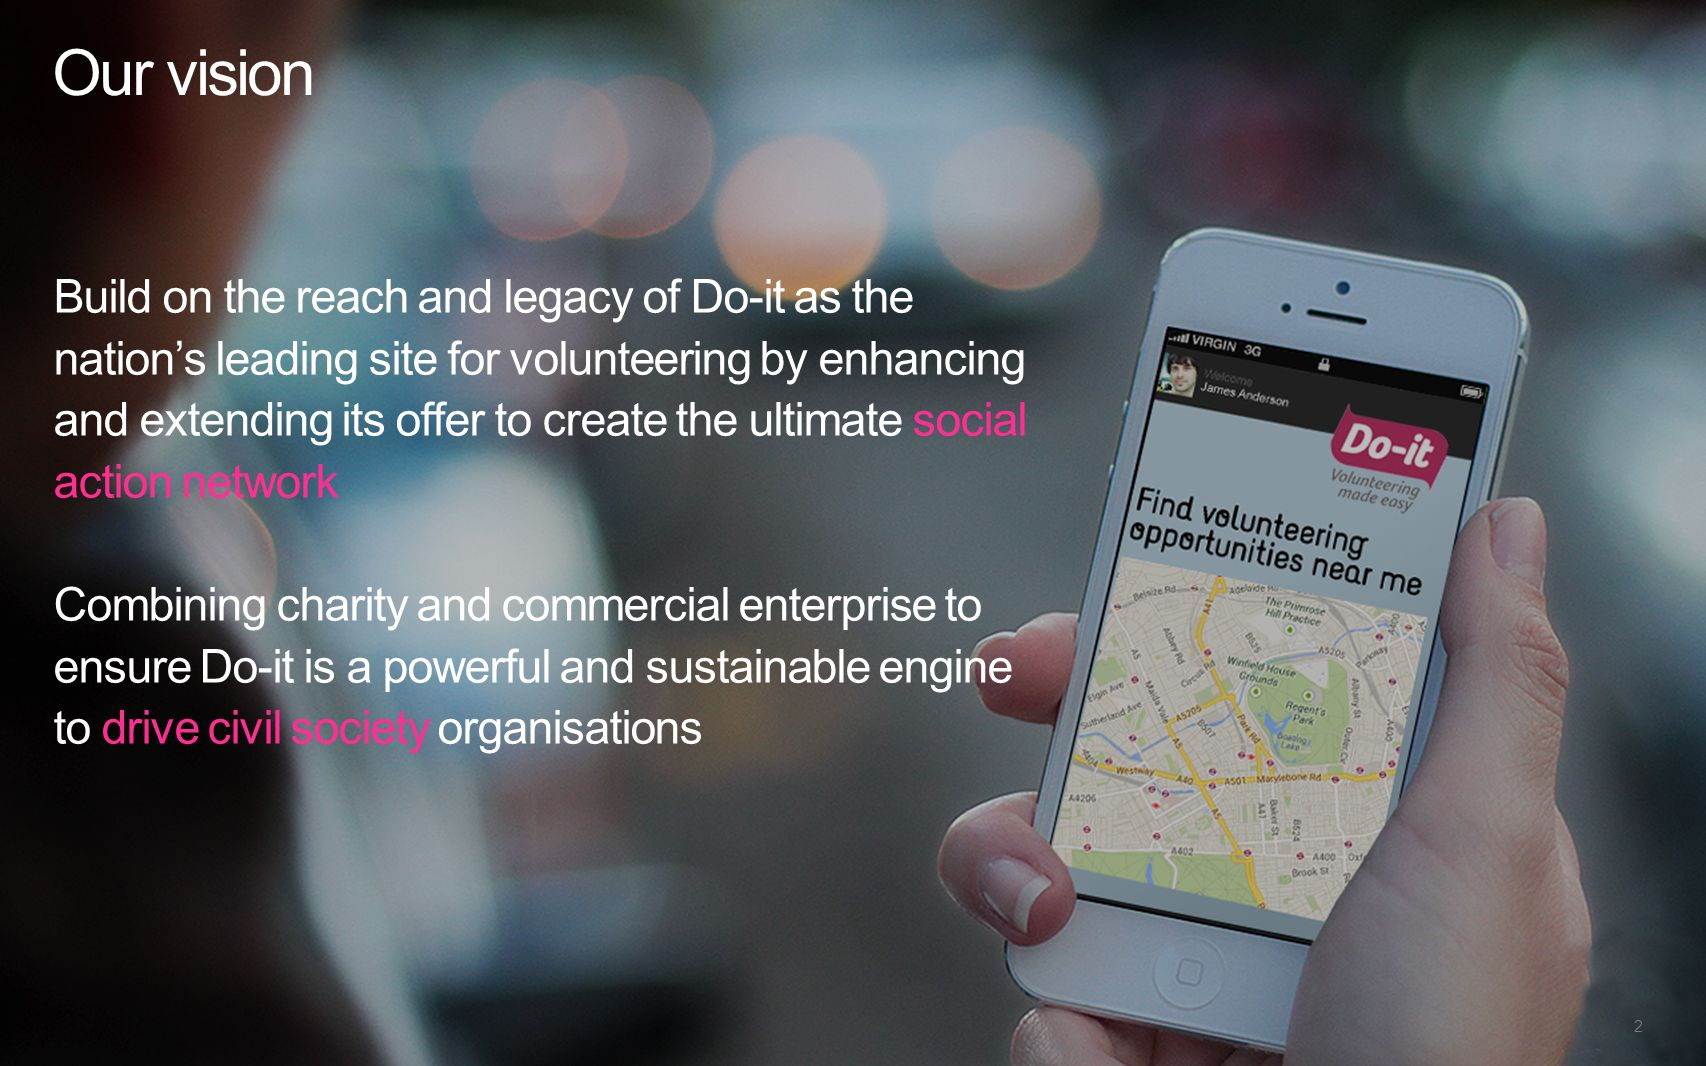 A vision for do-it.org Our vision Build on the reach and legacy of Do-it as the nation's leading site for volunteering by enhancing and extending its offer to create the ultimate social action network Combining charity and commercial enterprise to ensure Do-it is a powerful and sustainable engine to drive civil society organisations 2